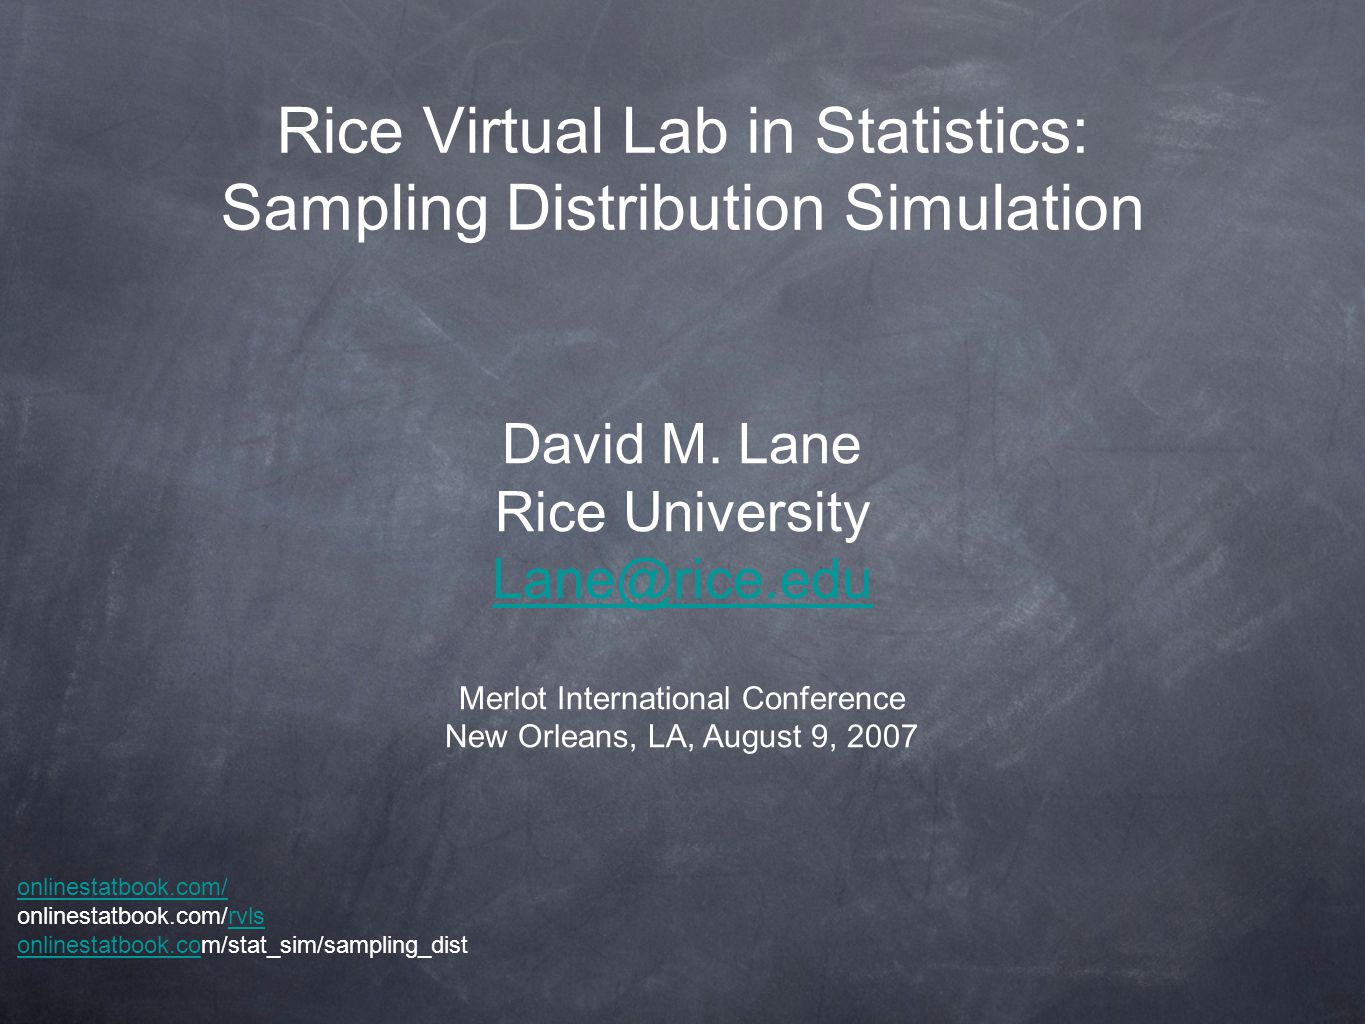 rice virtual lab in statistics: sampling distribution simulation, Presentation templates